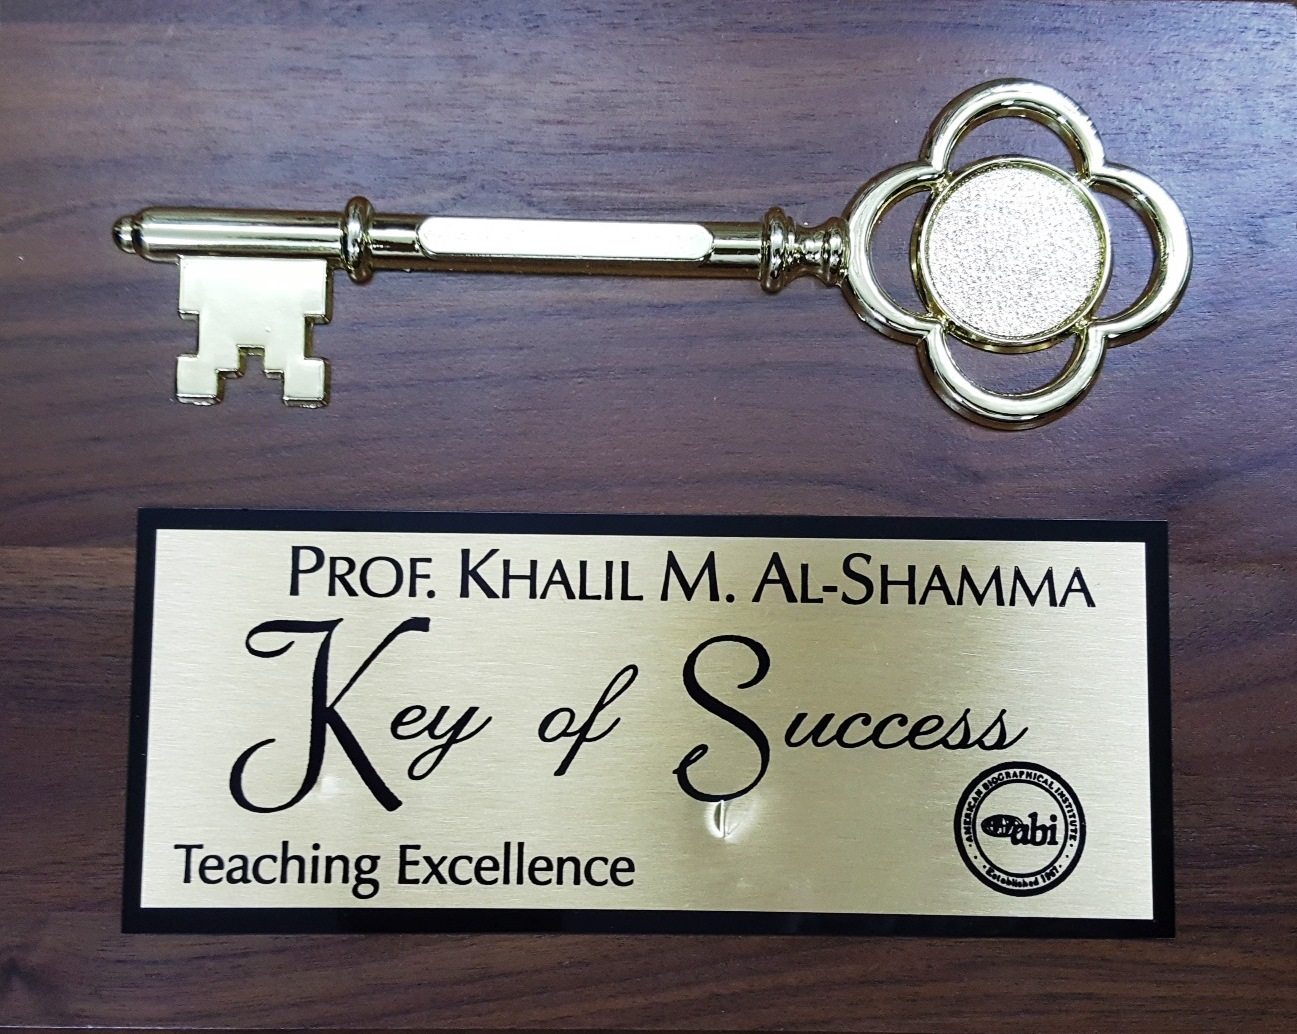 Keys of Success - Teaching Excellence